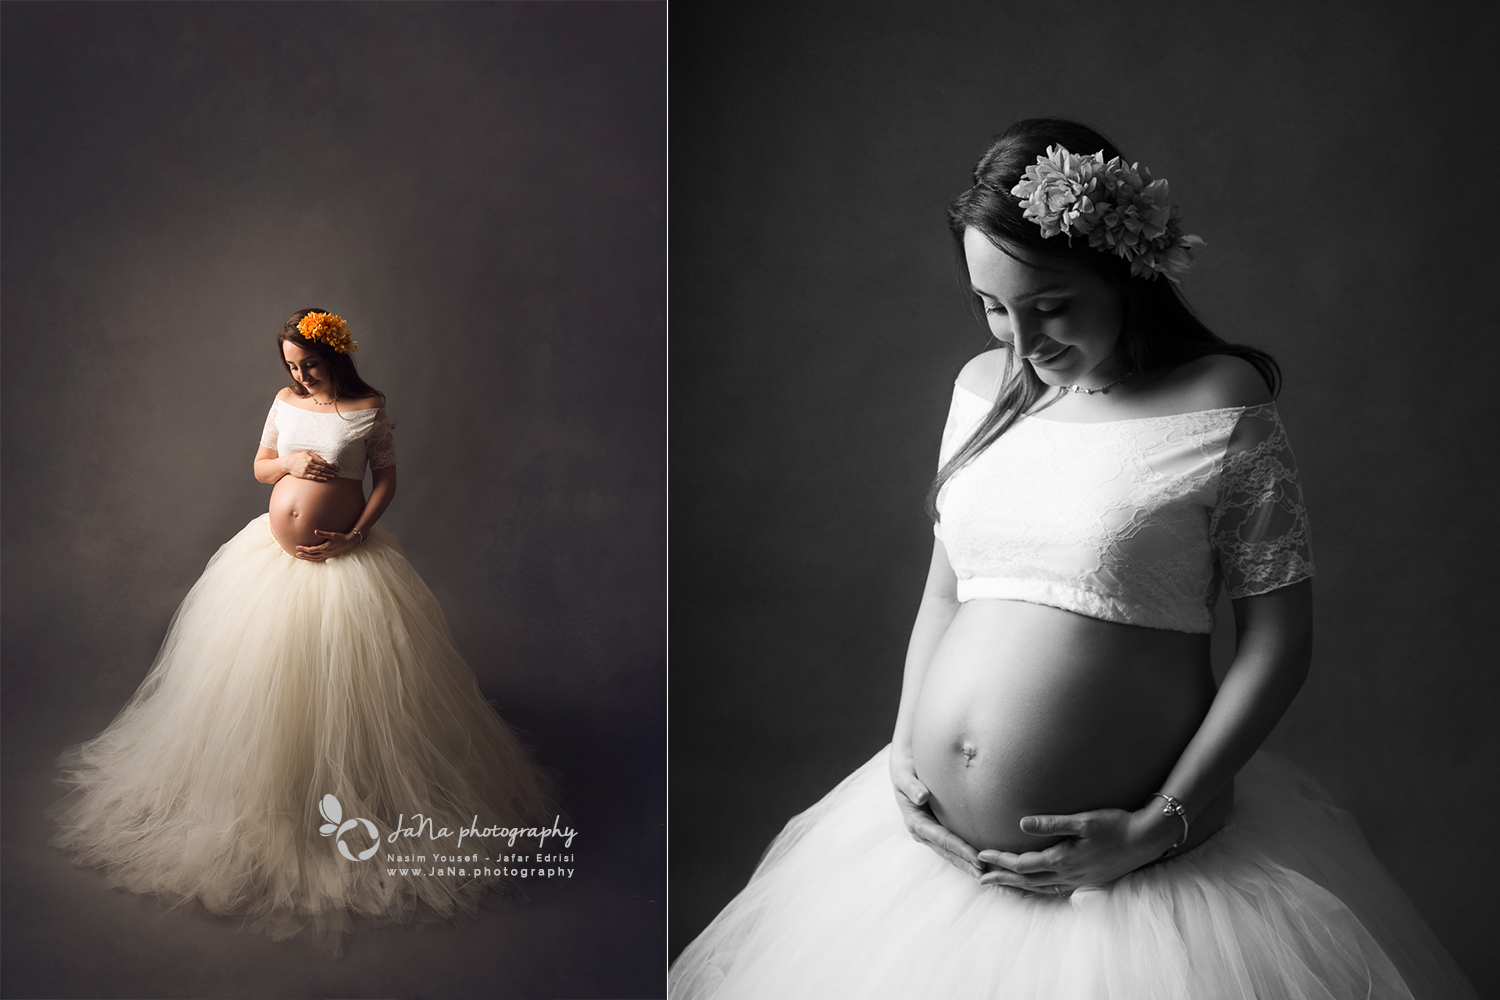 maternity photos of a solo mom in black and white and color - white tutu